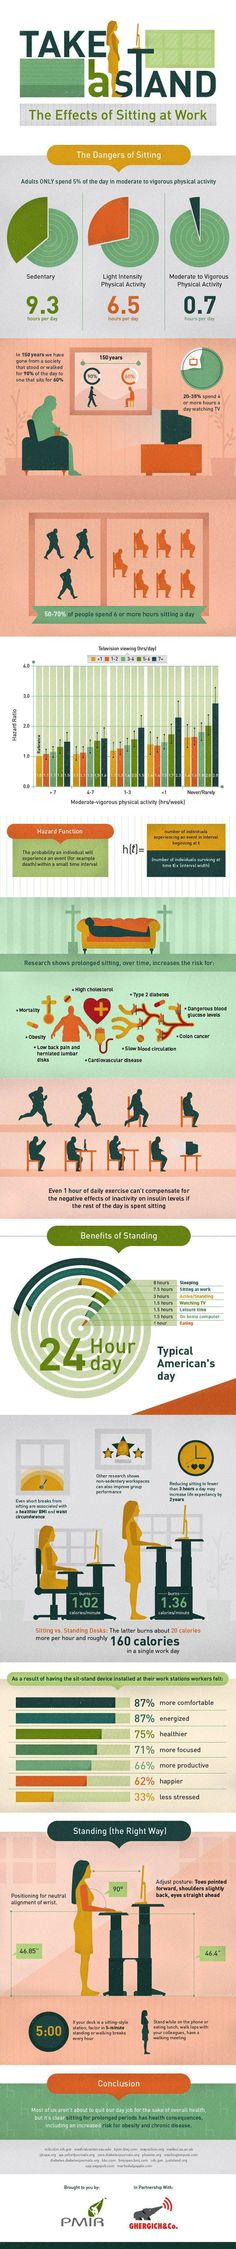 Sitting All Day Is Really, Really Bad For You (Infographic).I've battled this for the past years. I love what I do, but it does require a work atmosphere that is mostly revolved around sitting. You have got to be proactive to avoid these effects. How To Start Exercising, Health And Wellness, Health Fitness, Free Fitness, Muscle Building Foods, Tasty Vegetarian Recipes, Workplace Wellness, Employee Wellness, Sedentary Lifestyle